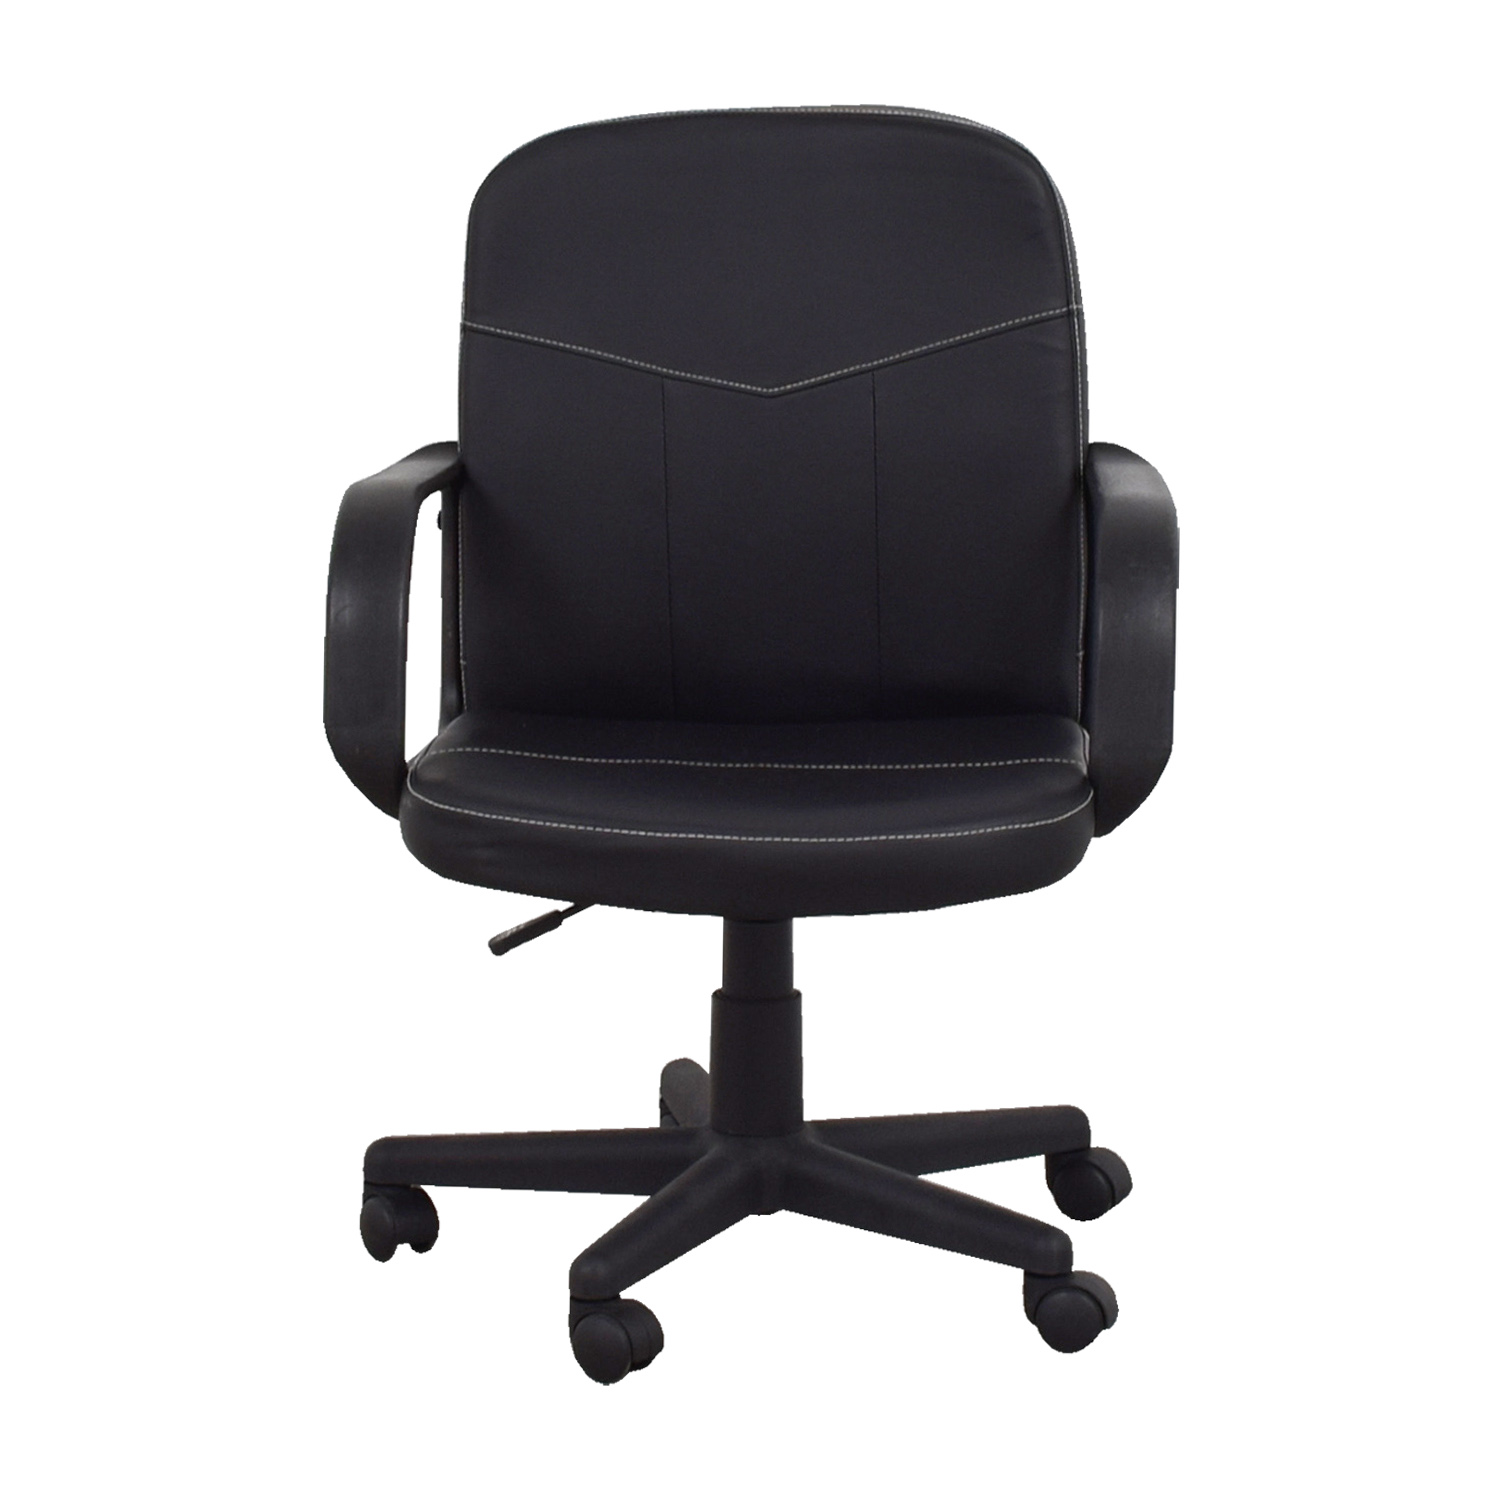 office chair comfort accessories sofa covers walmart 58 off products black bonded